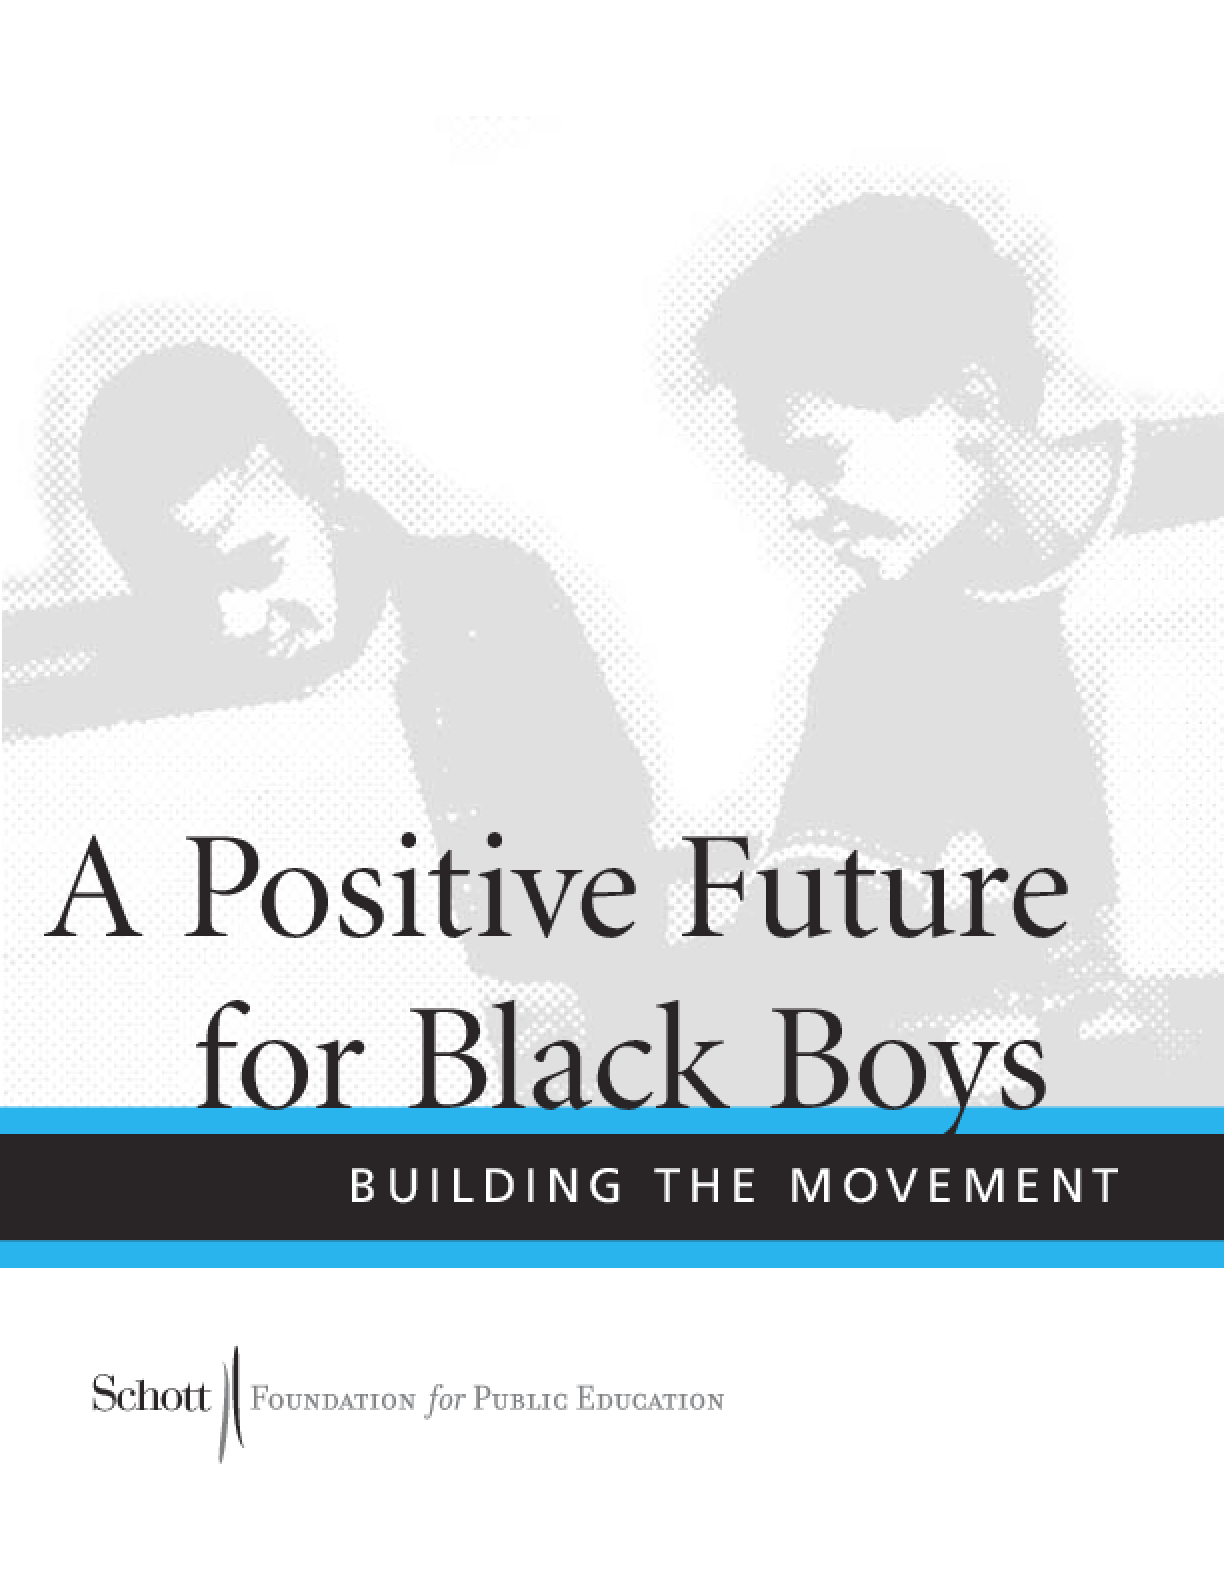 A Positive Future for Black Boys: Building the Movement